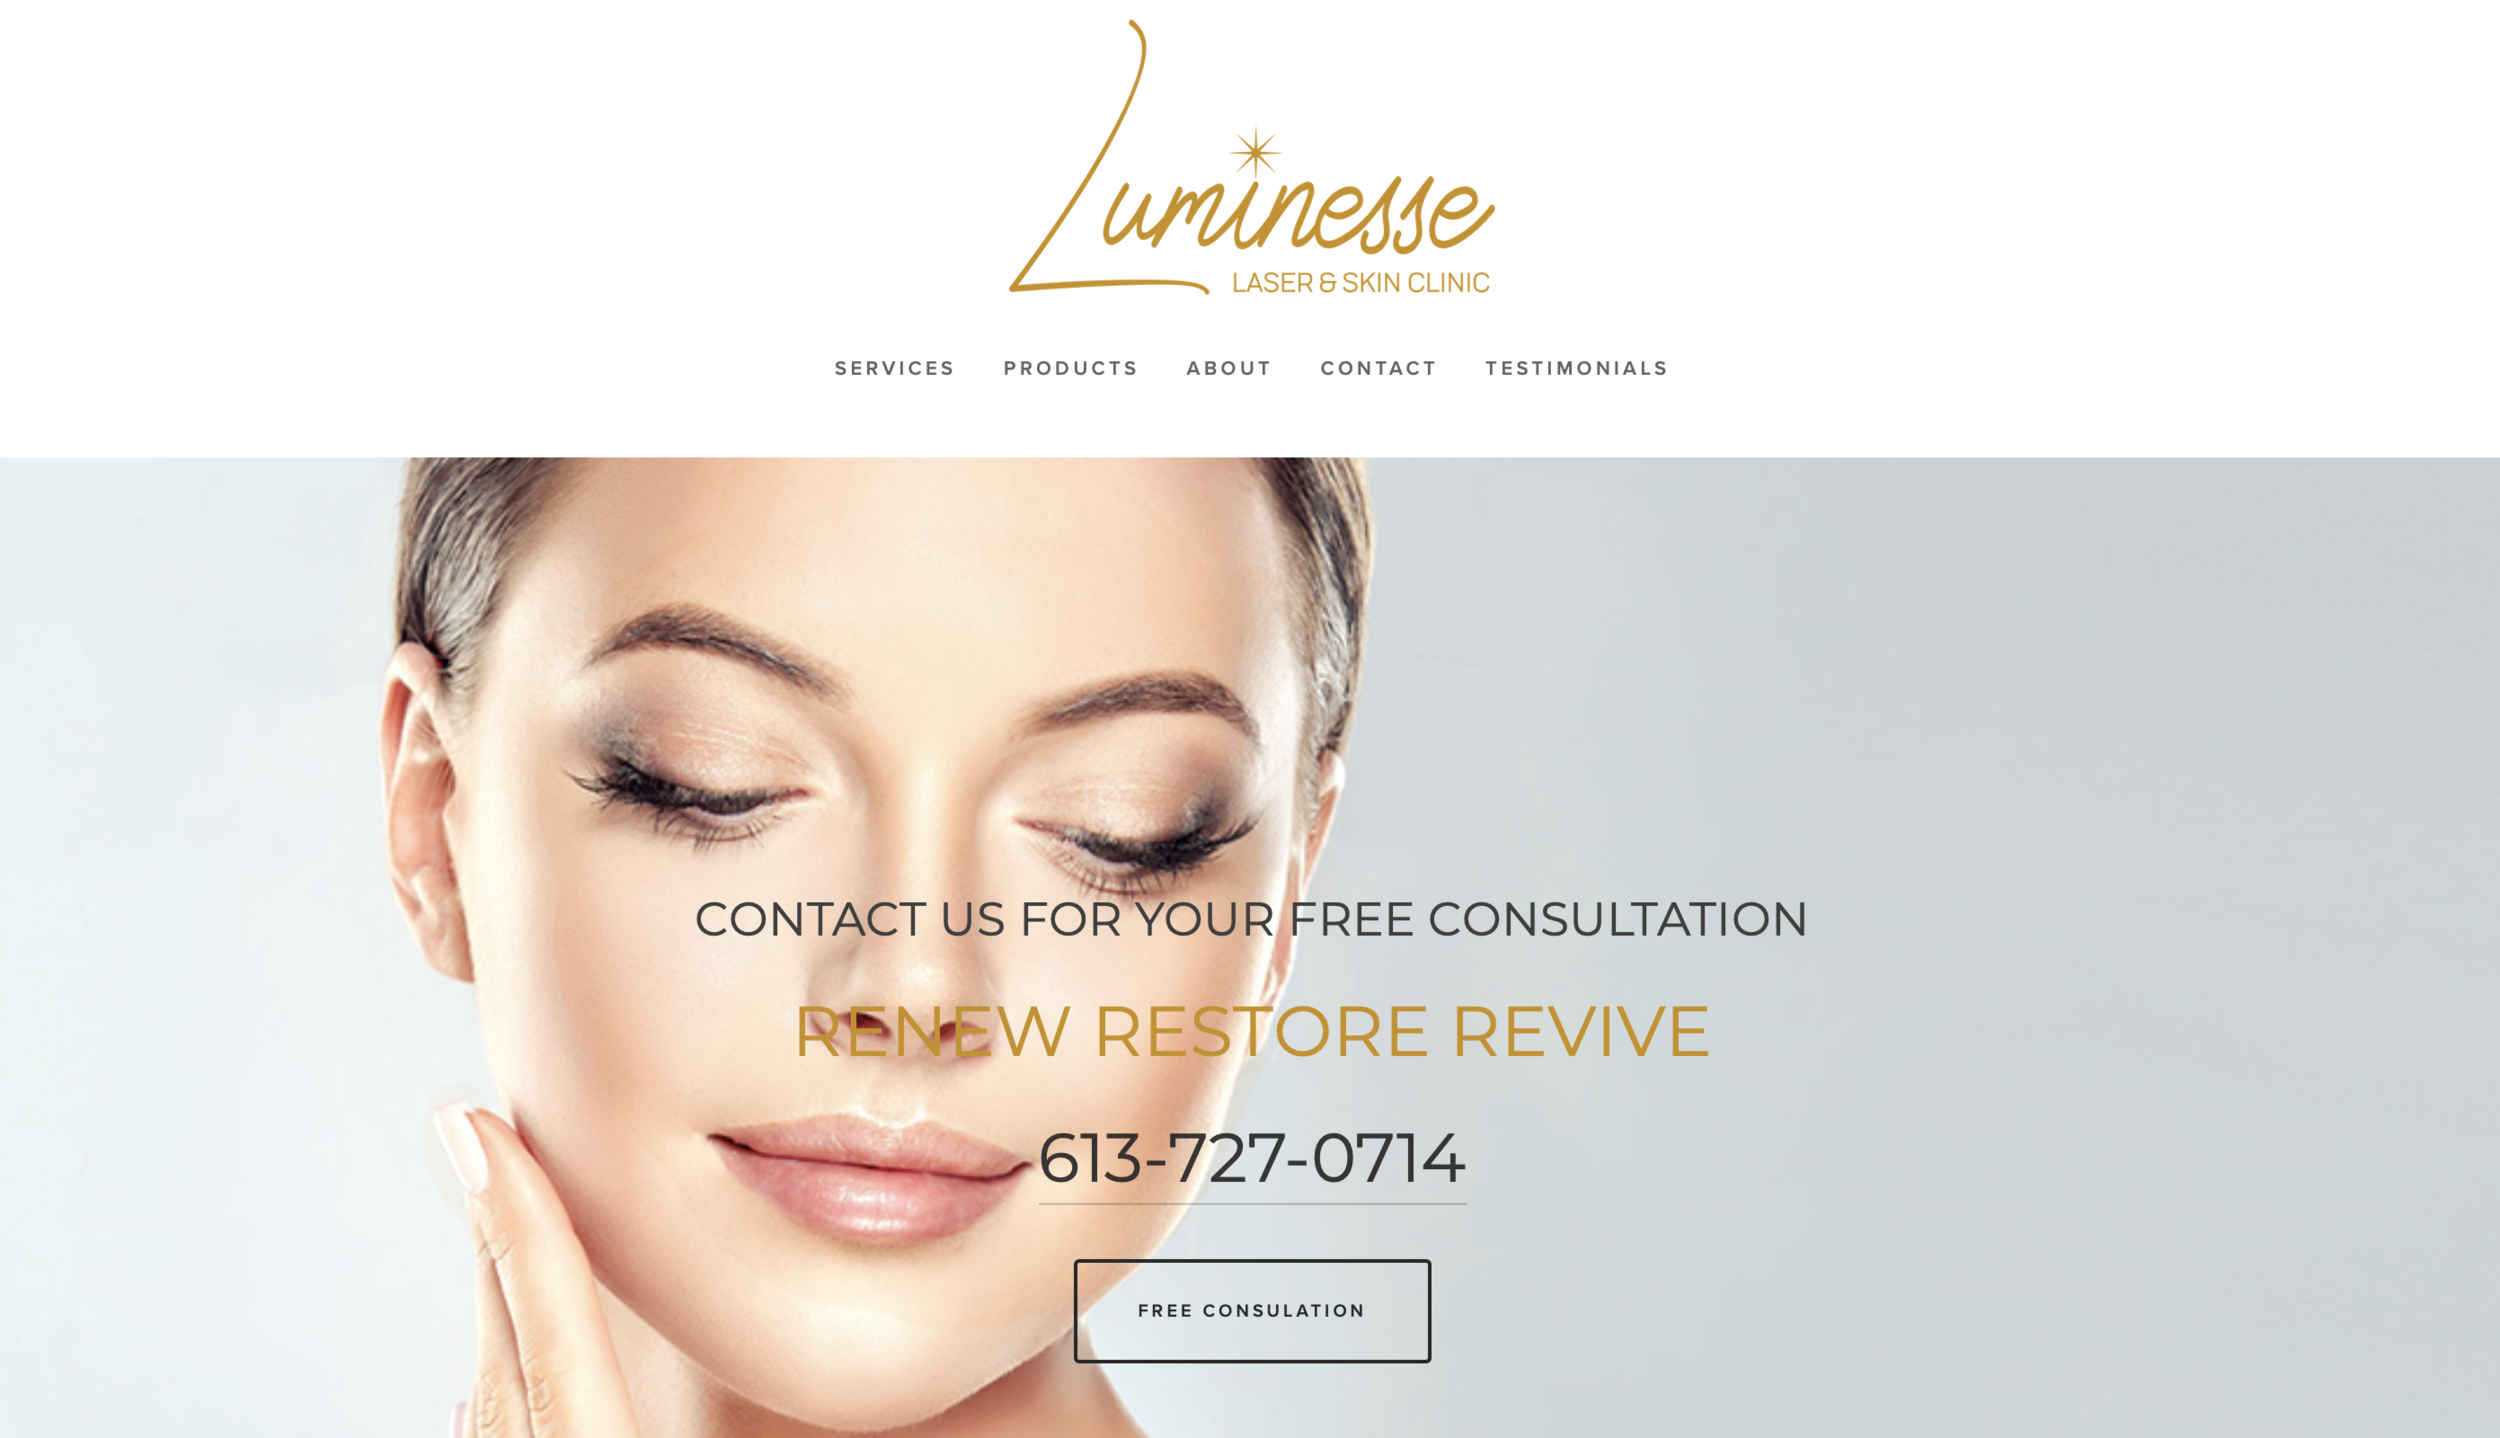 Image Depicts Web Design & Content Created for  Luminesse Laser + Skin Clinic  Landing Page. Platform: Squarespace